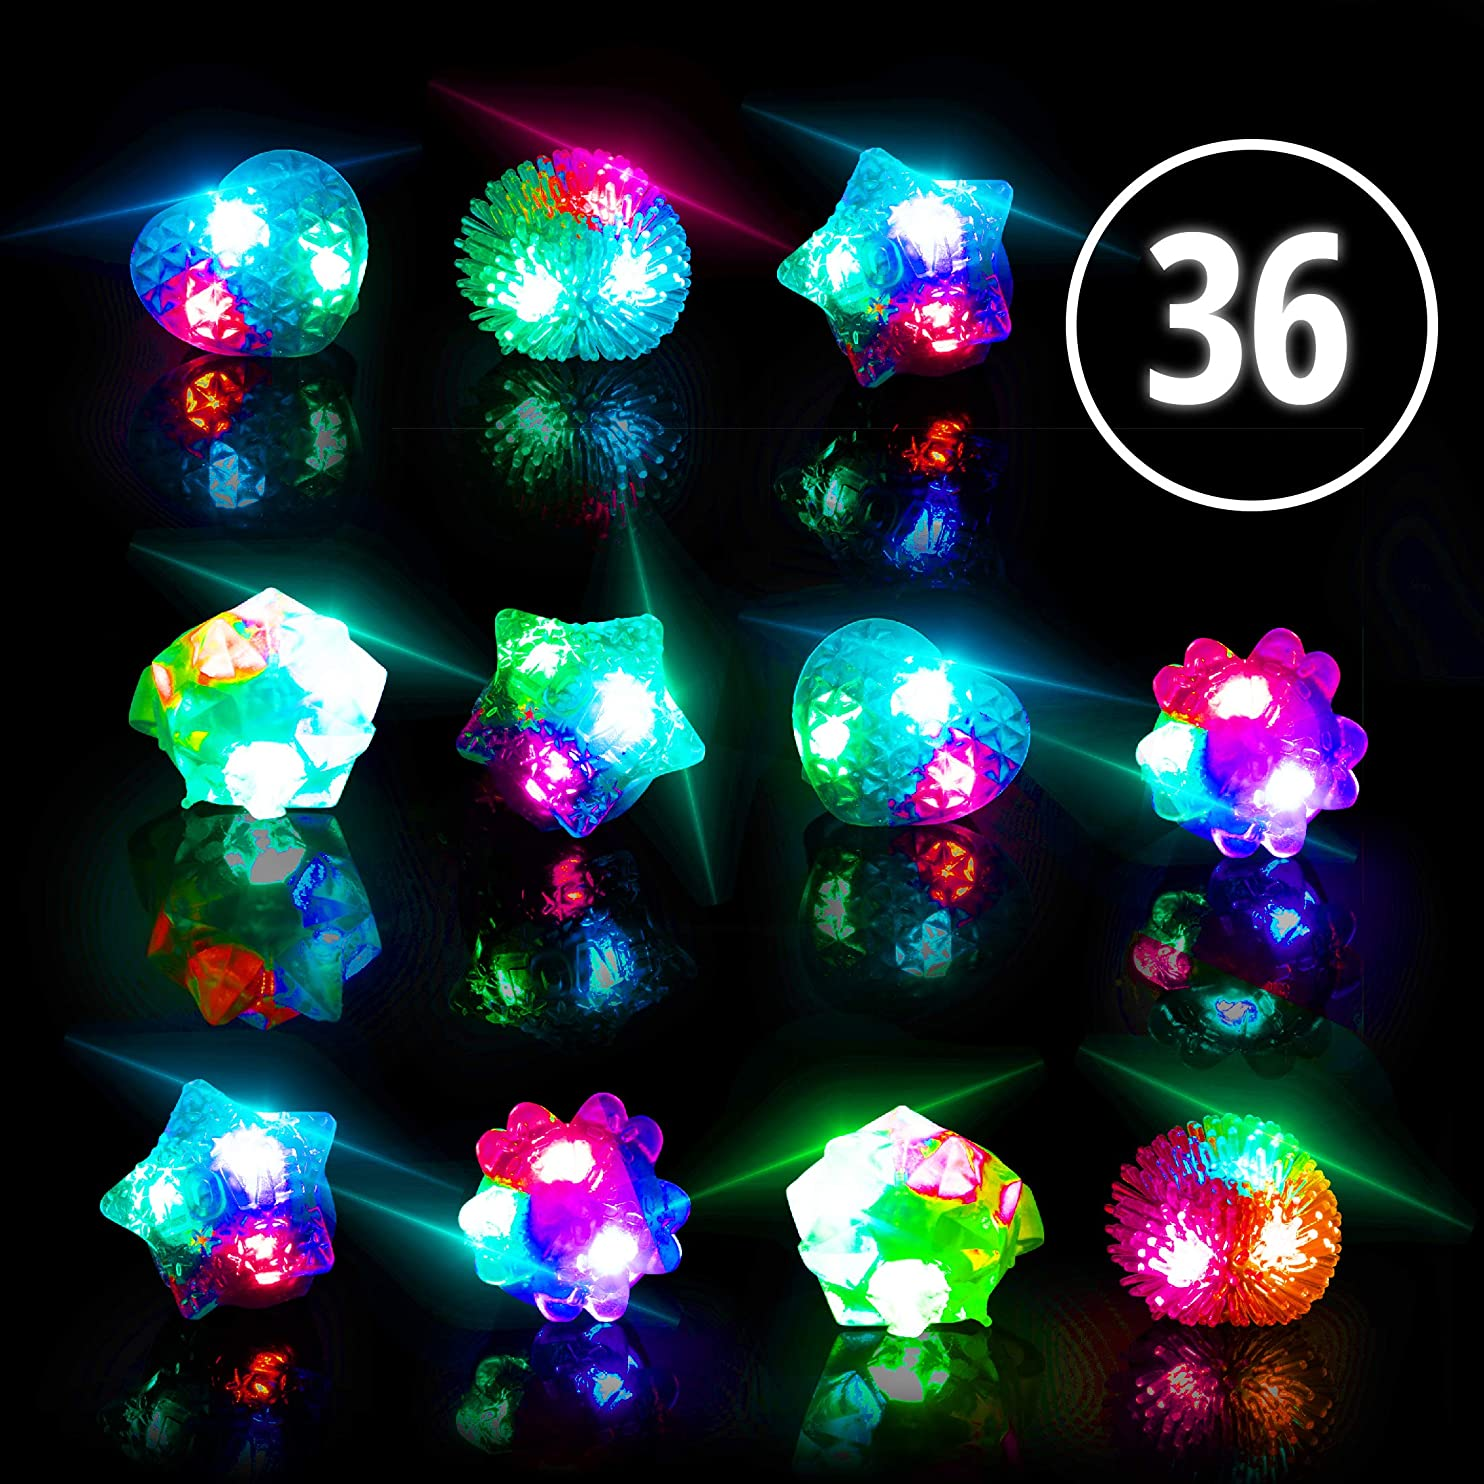 Glow Rings LED Party Favors for Kids - Light Up Jelly Rings Glow in The Dark Party Supplies, LED Finger Lights and Rave Accessories (36pk Multicolor) rgbpkhqnxys05